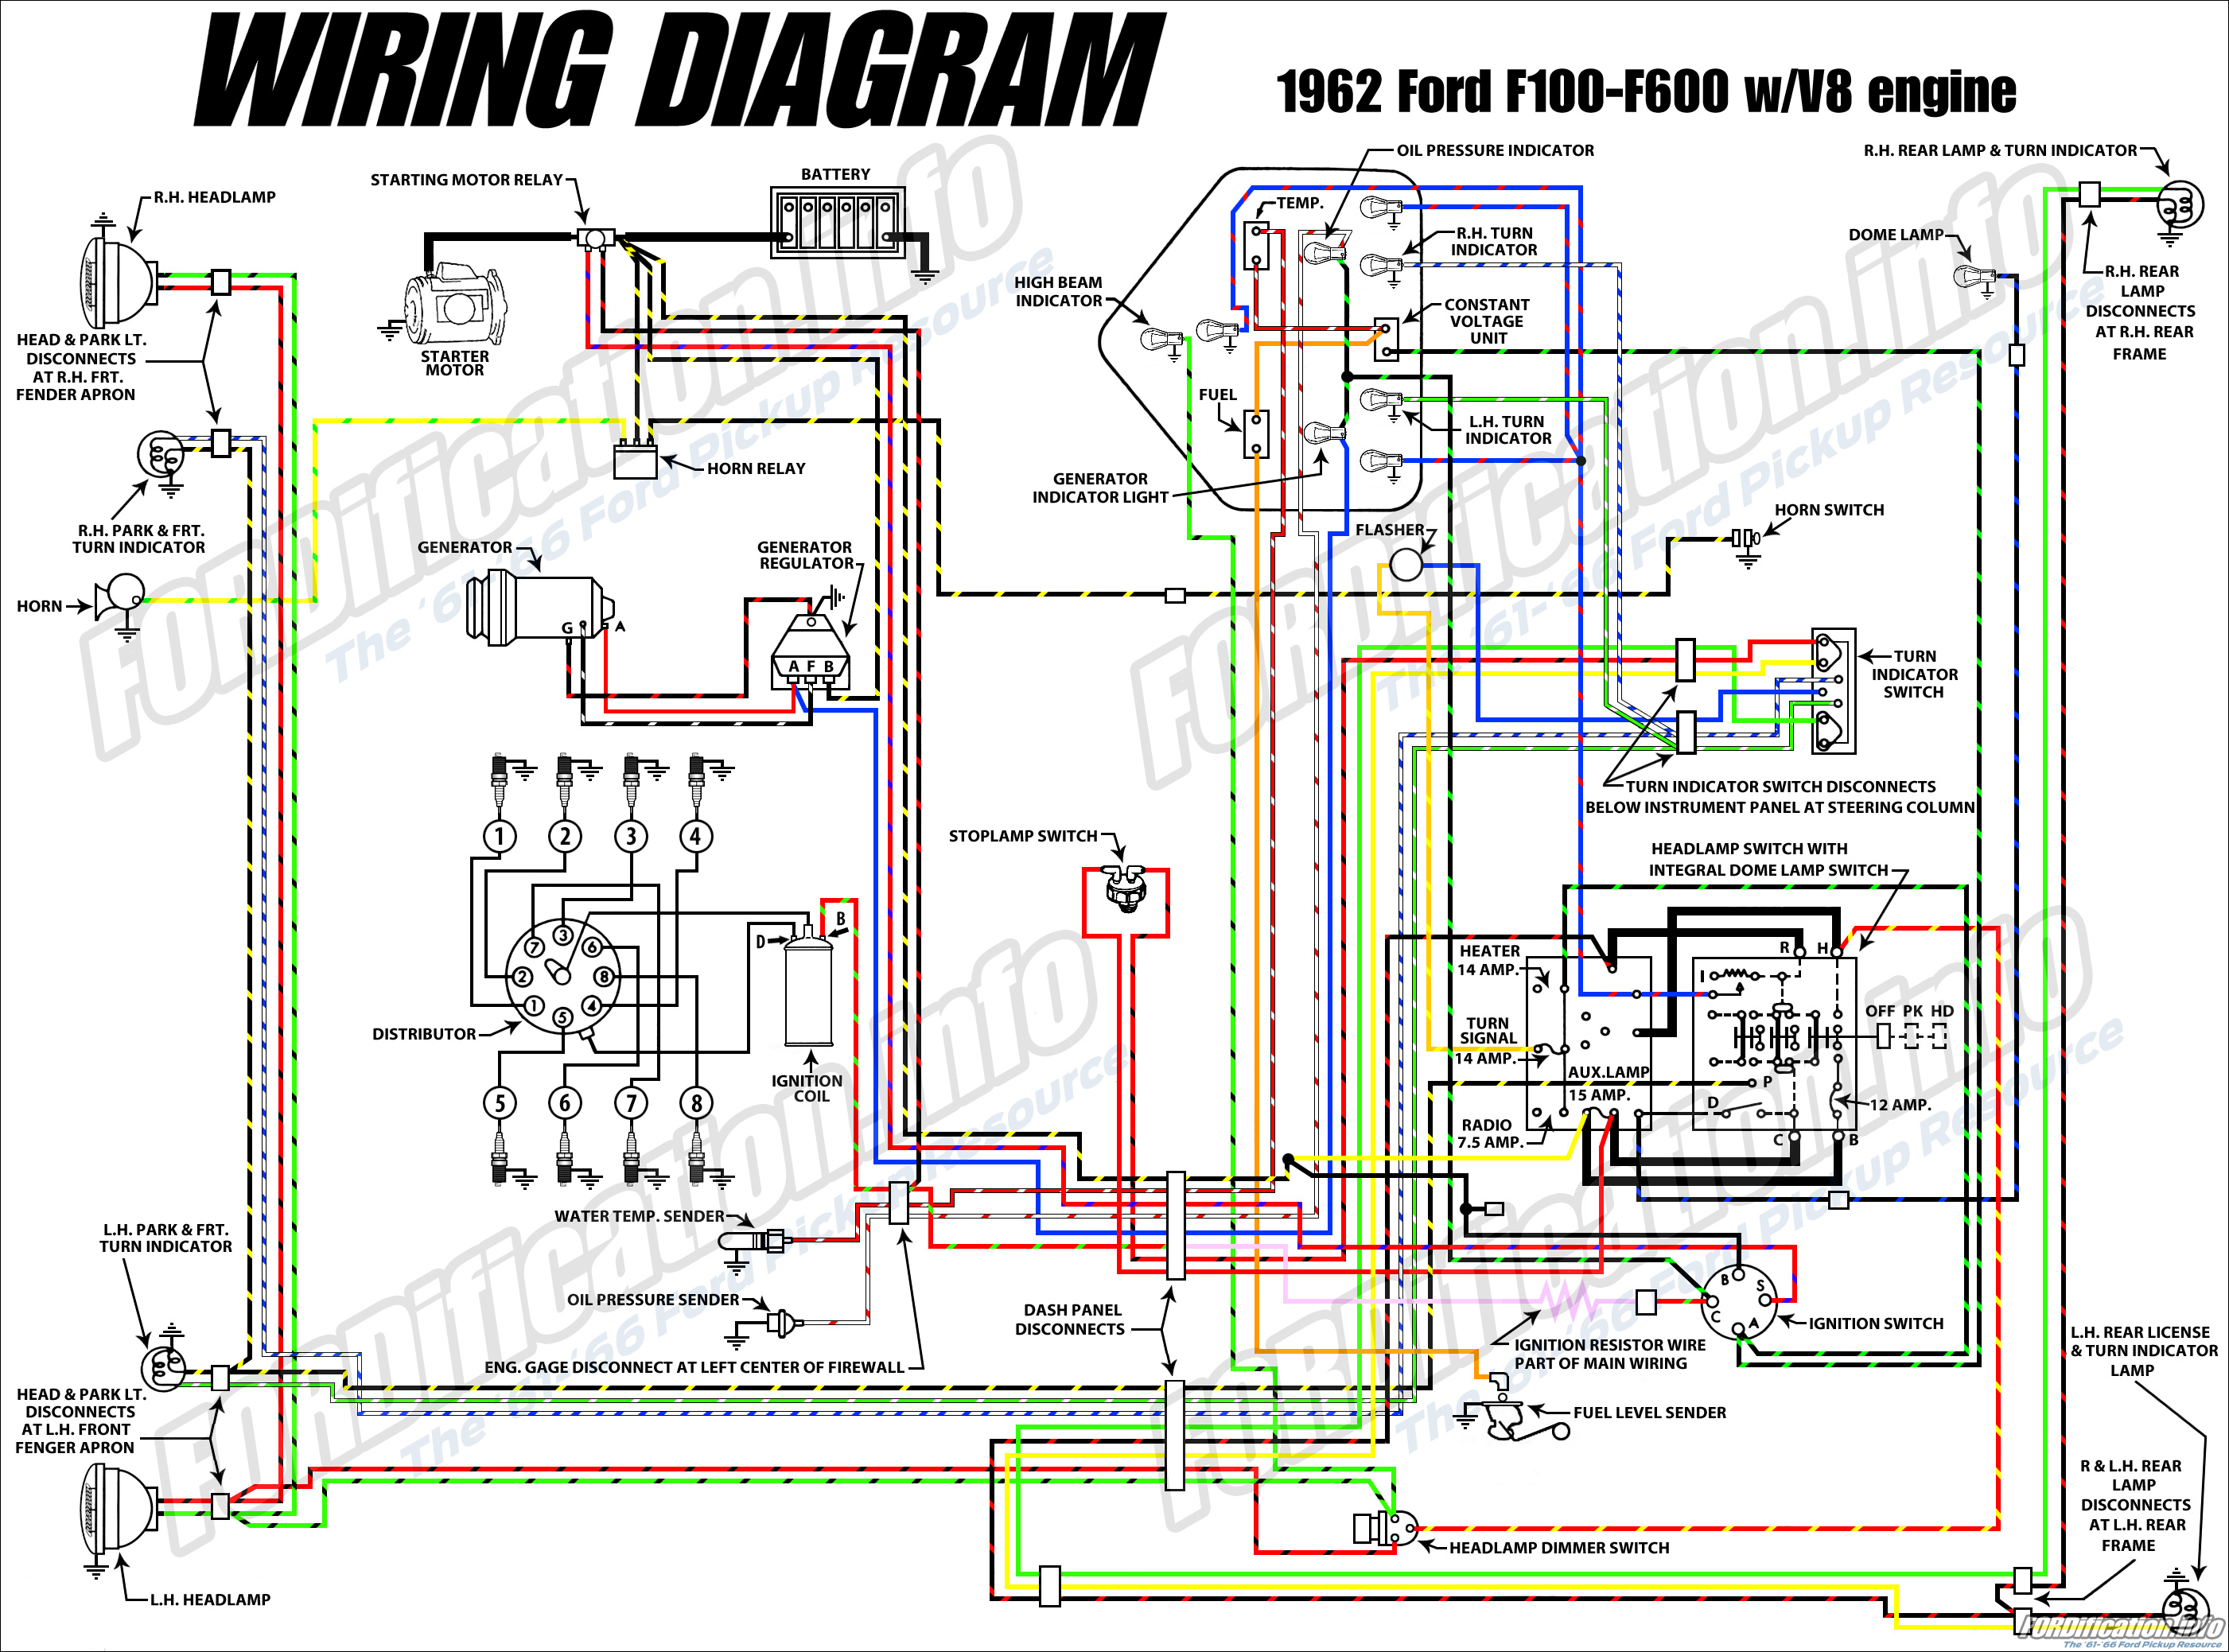 66 f100 cab light wiring ford truck enthusiasts forums 1966 mercury wiring diagram and here's the wiring diagram for the 66 same circuit to the light switch and with the same black wire with blue stripe